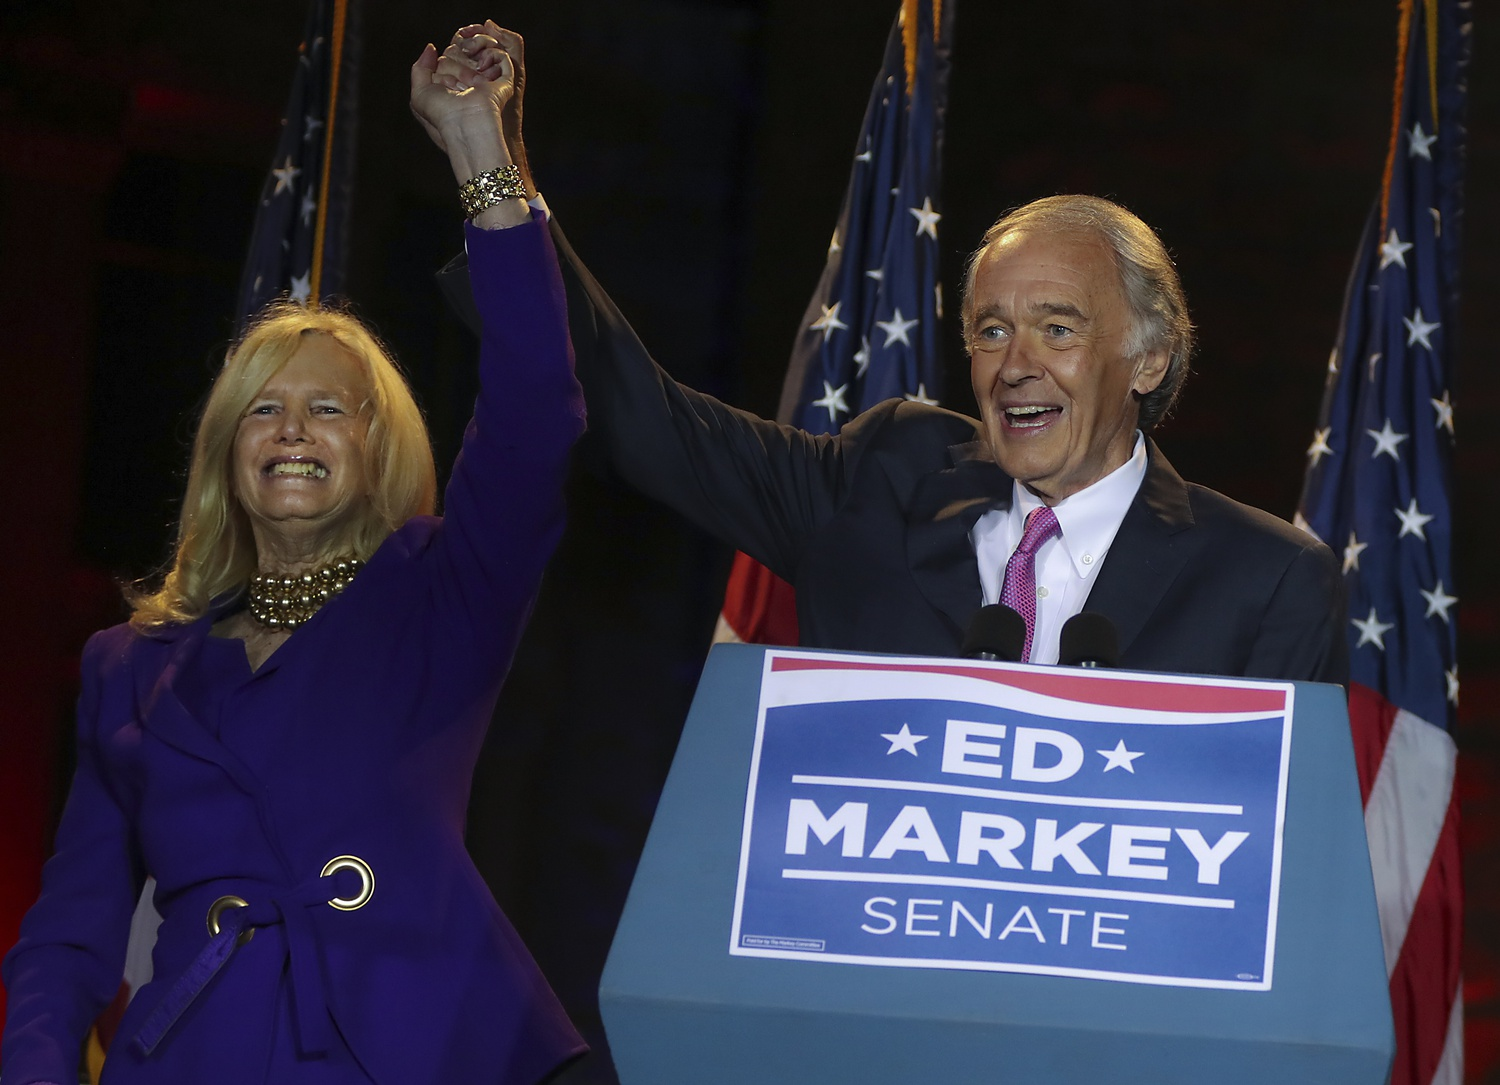 Massachusetts saw a spate of incumbent victories Tuesday.